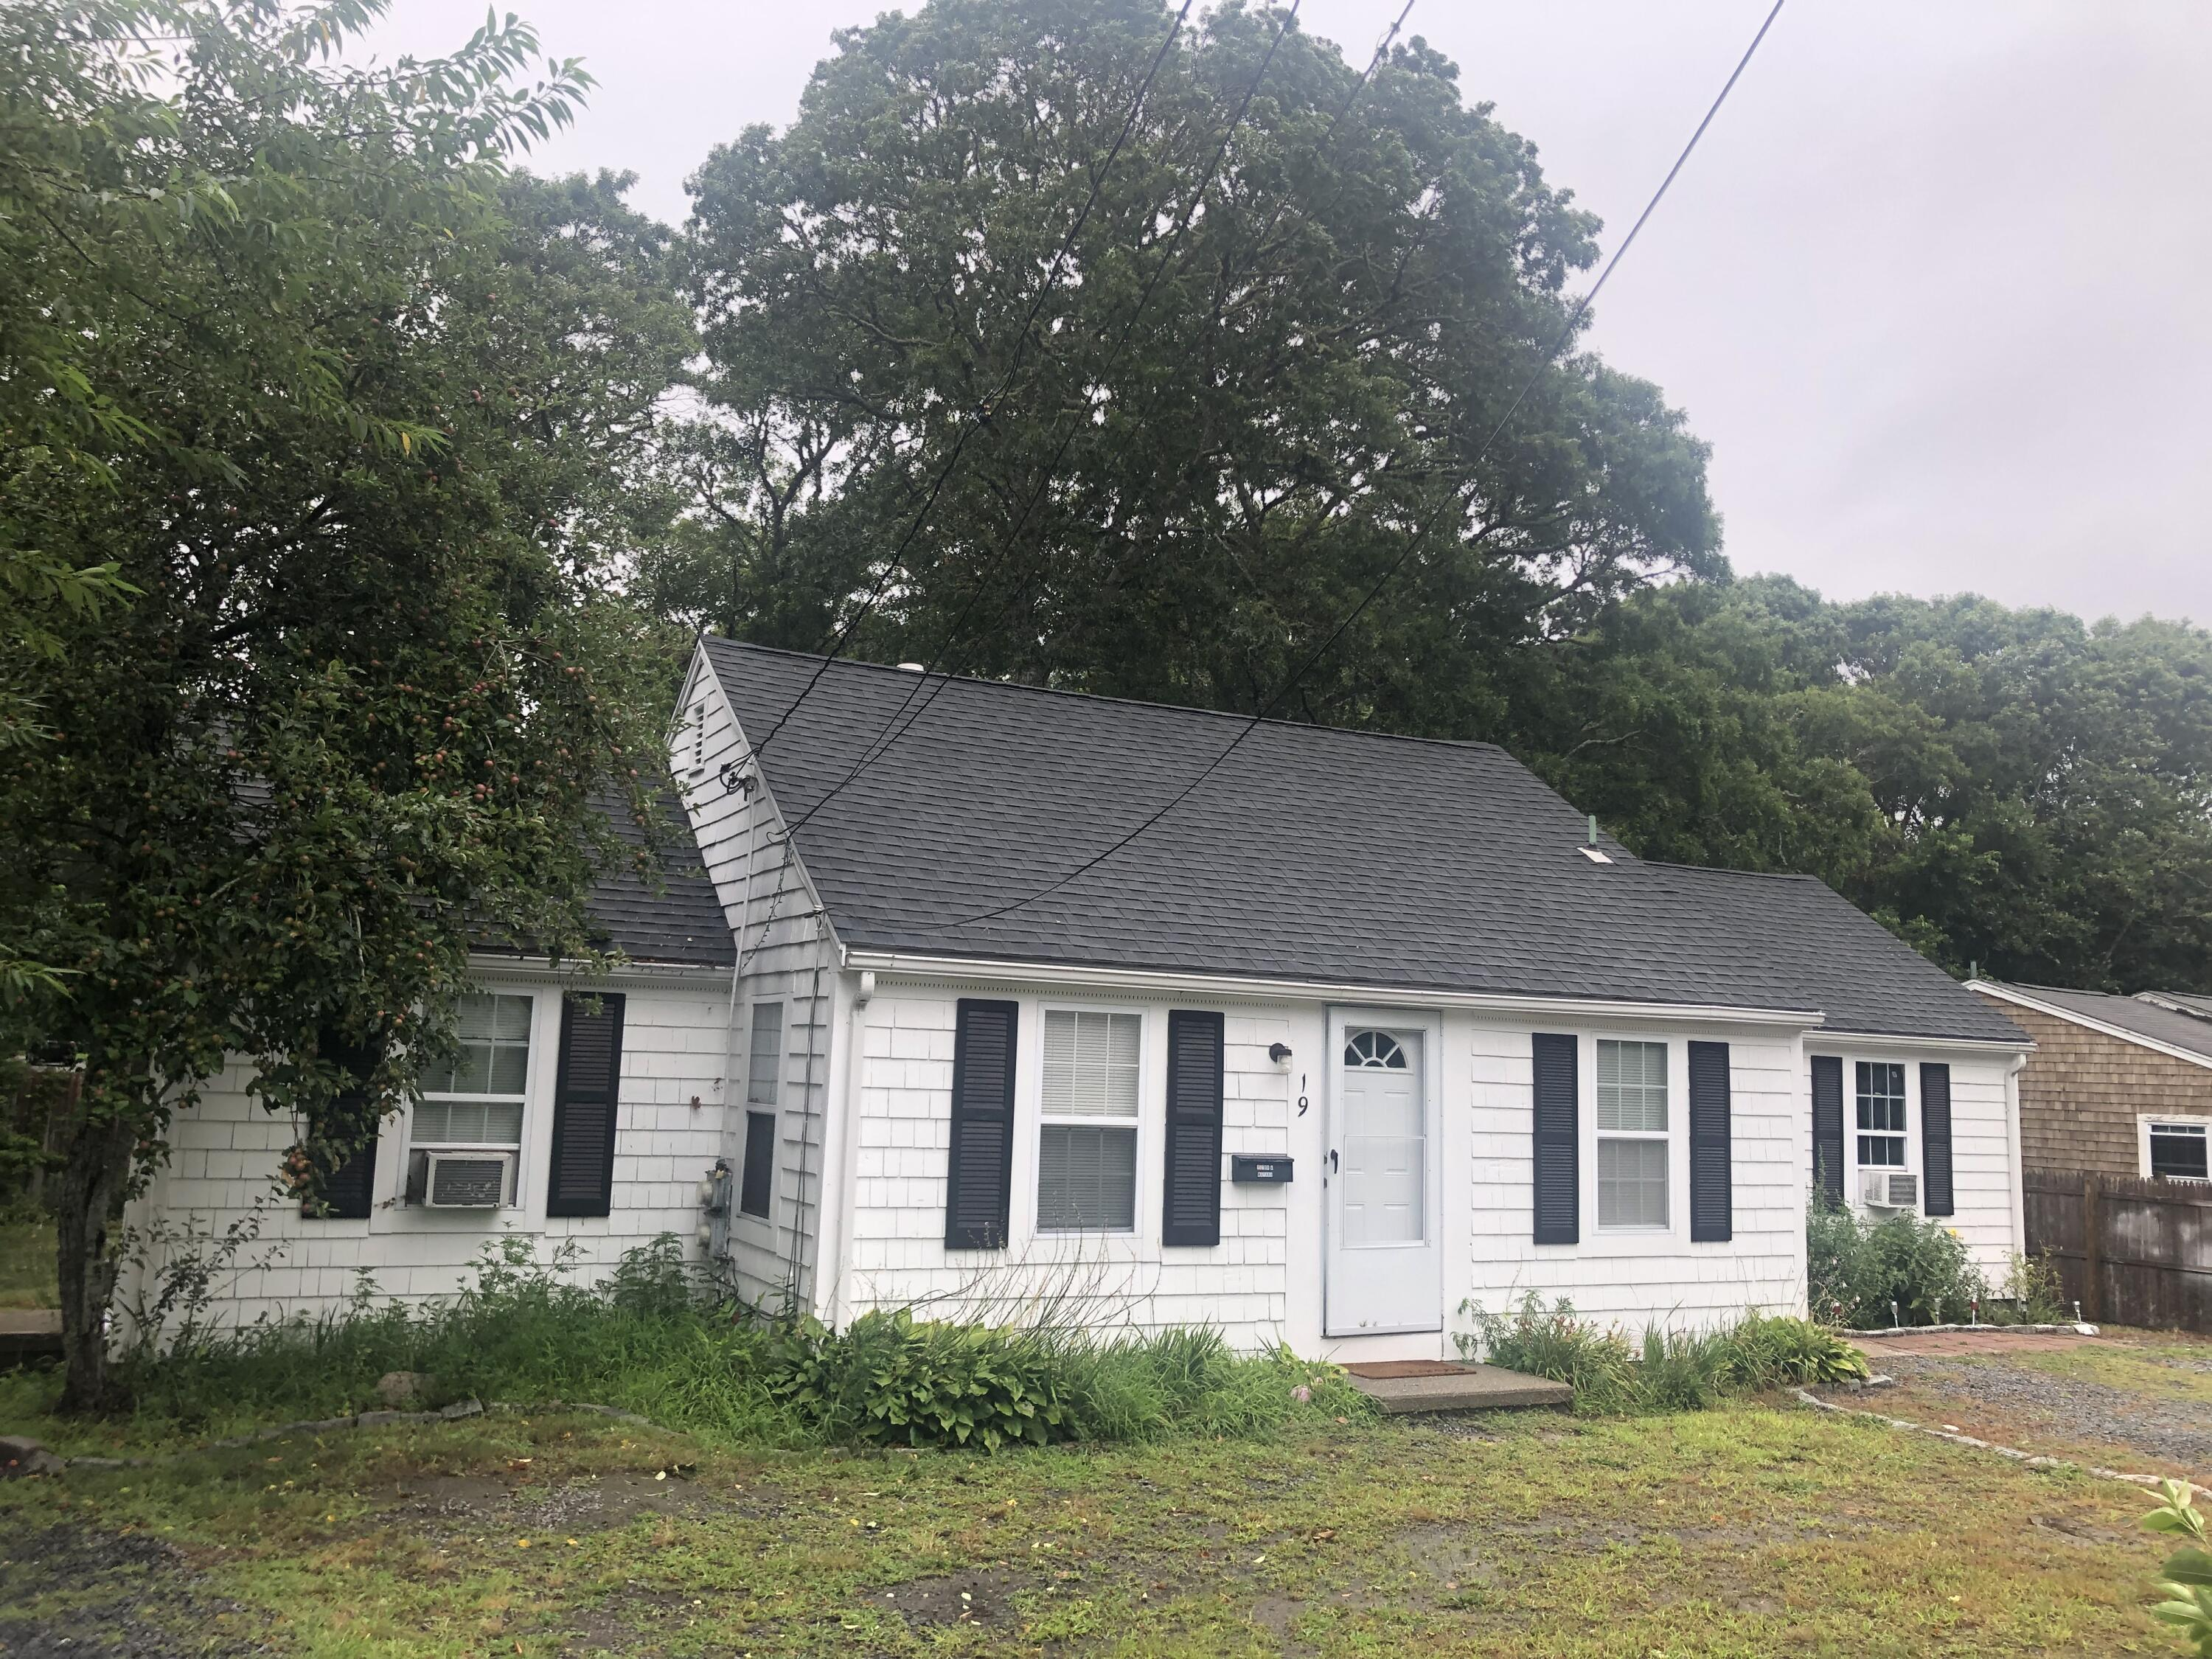 19 & 21 College Street, West Yarmouth MA, 02673 details